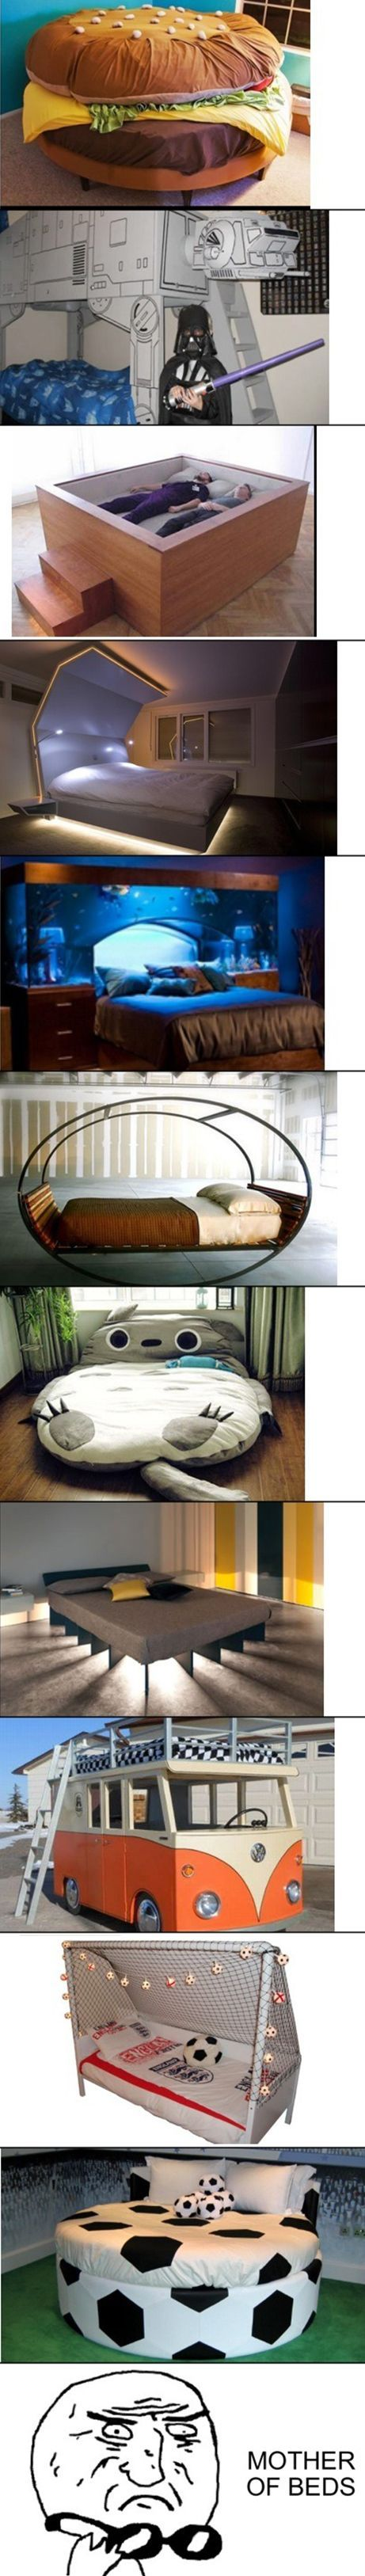 Awesome beds are awesome